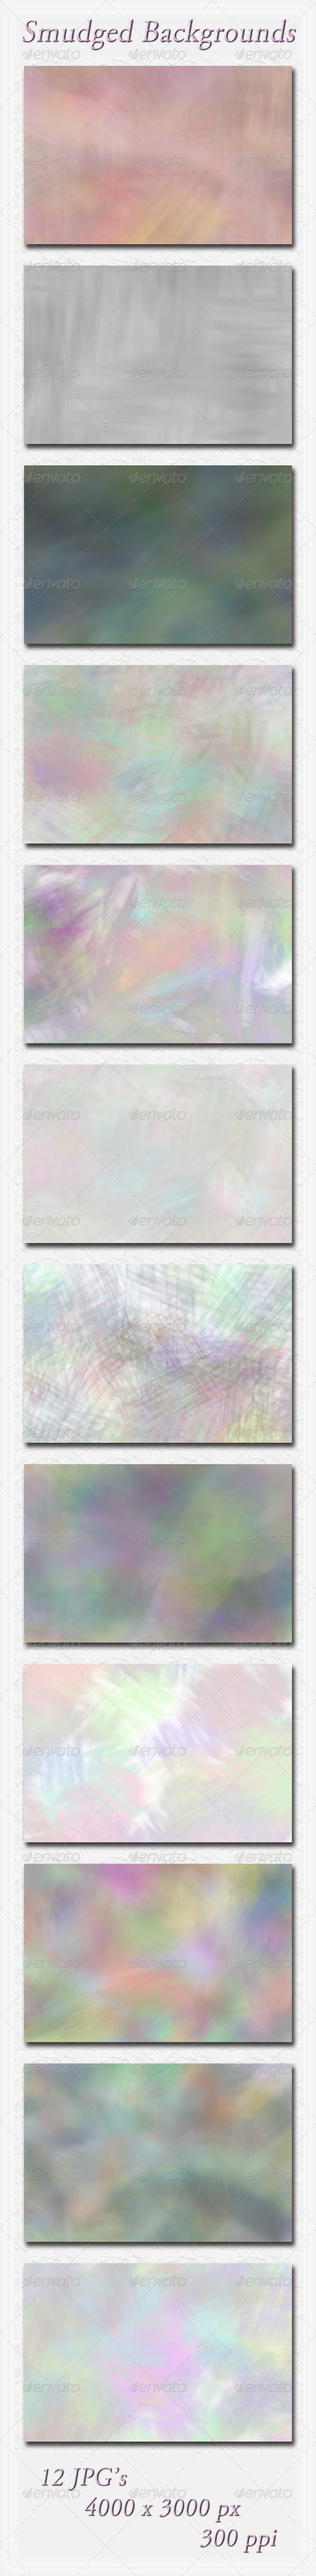 GraphicRiver Smudged Backgrounds 5949819